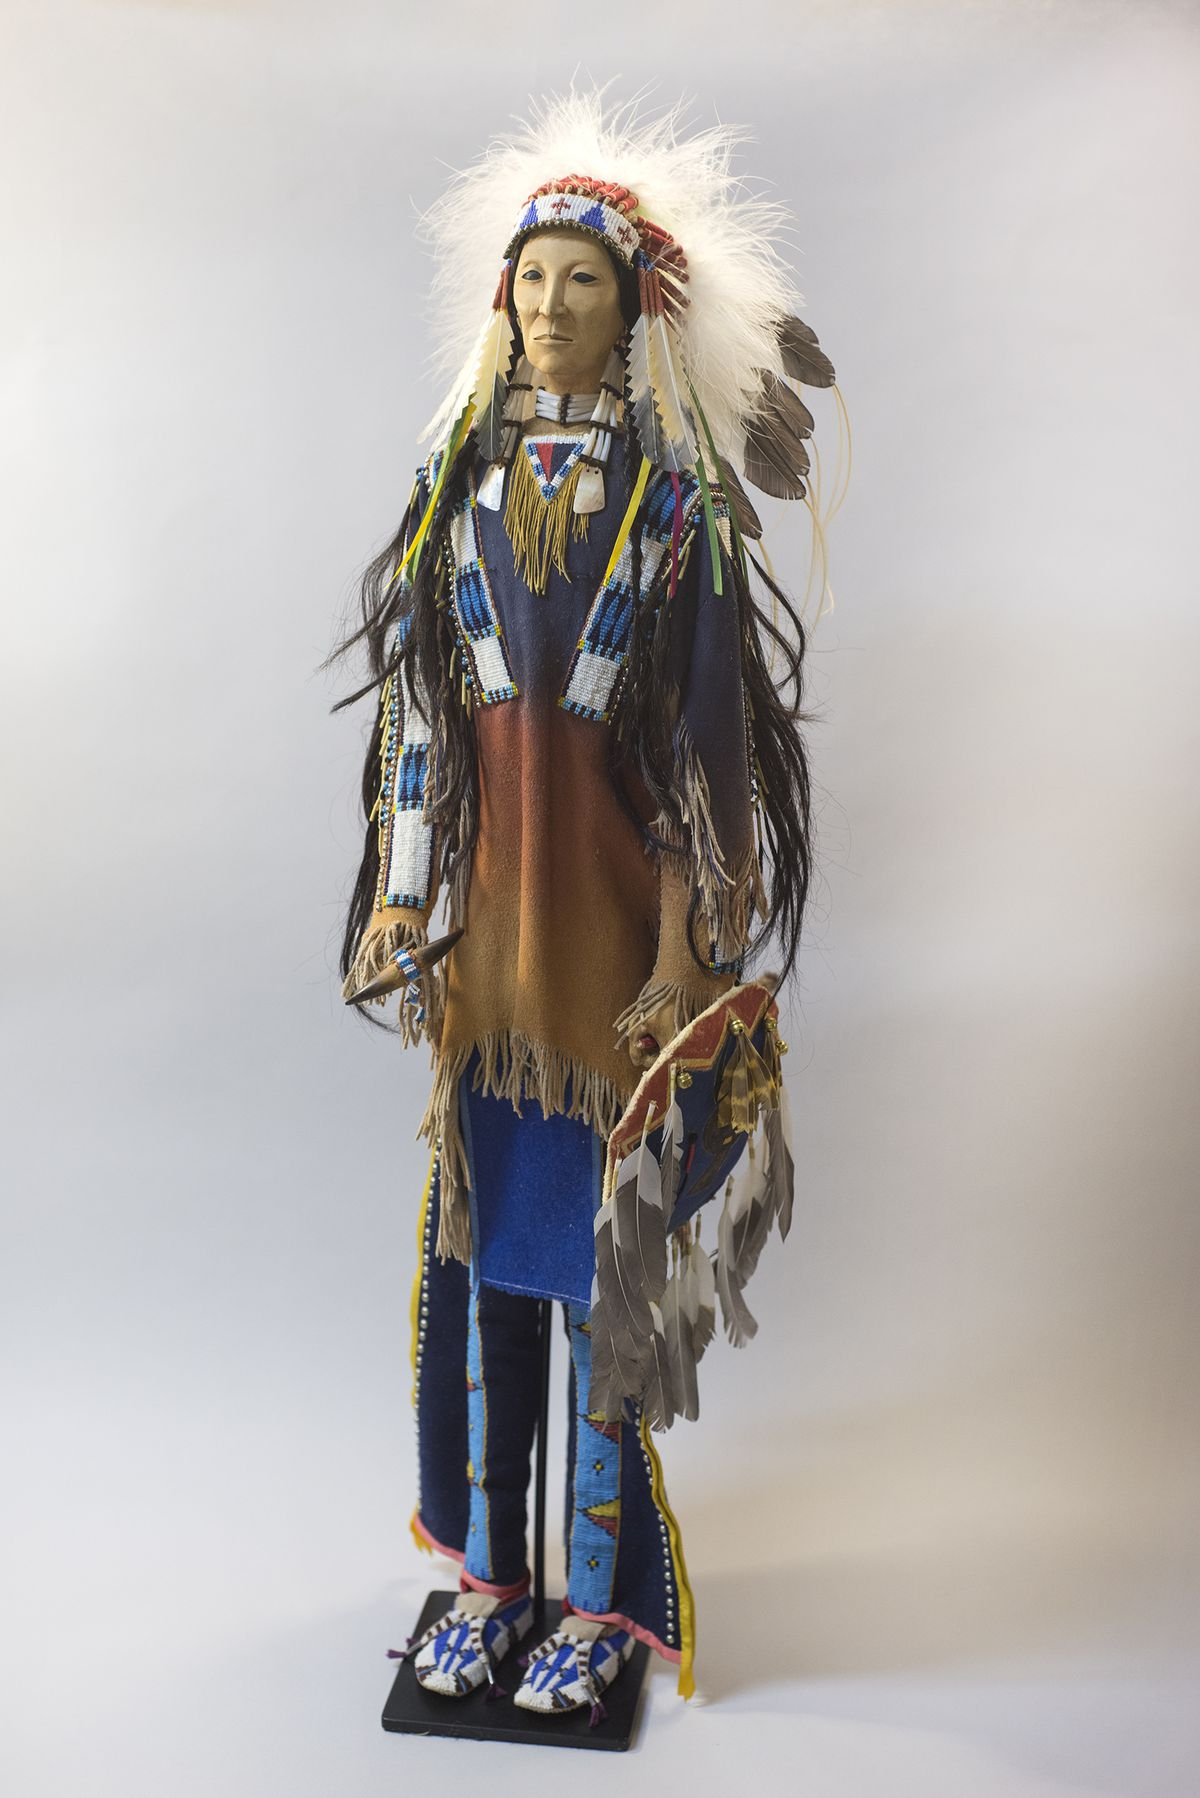 A doll by noted Lakota artist Rhonda Holy Bear is on display at the Mitchell Museum of the American Indian. | COURTESY OF THE MUSEUM